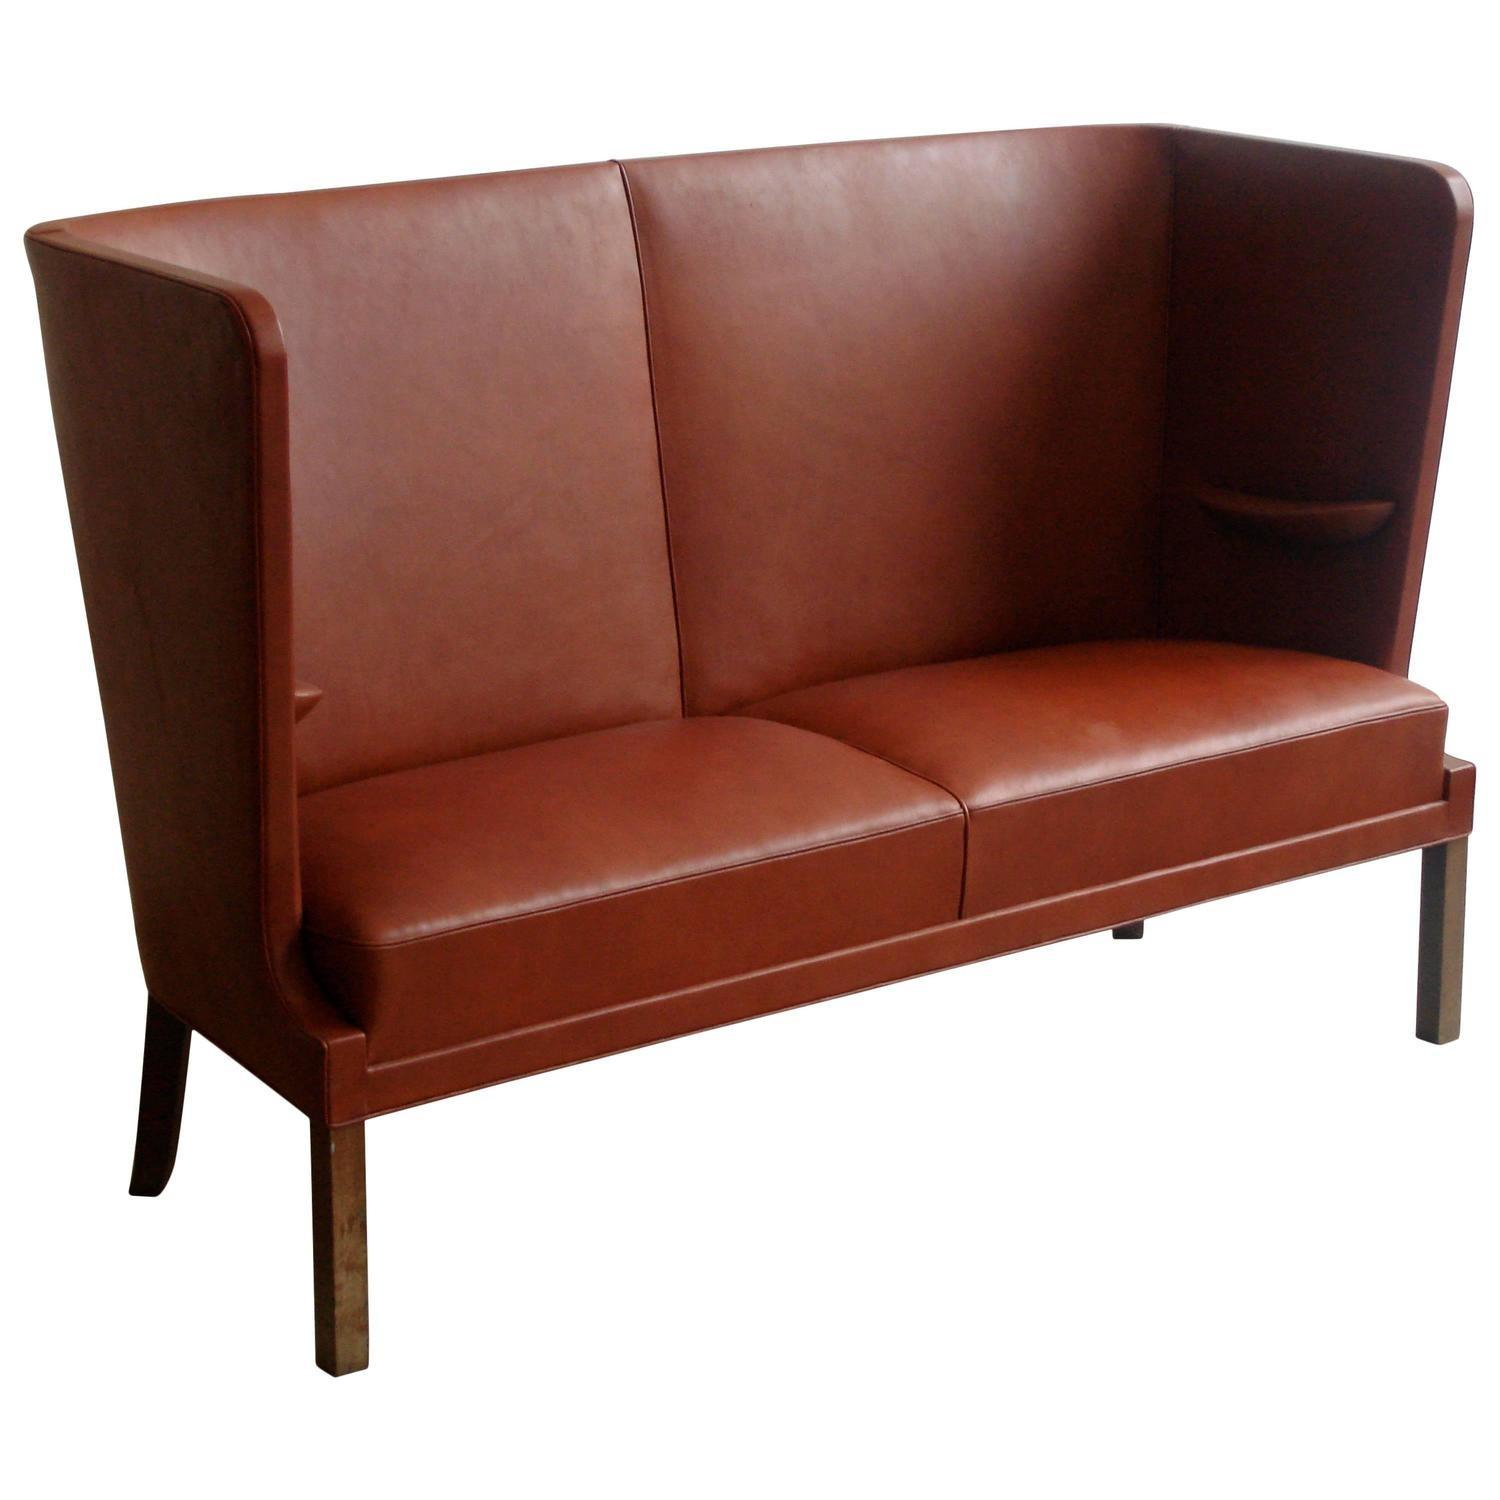 Iconic 1930s High Backed Sofa Interior Armrests